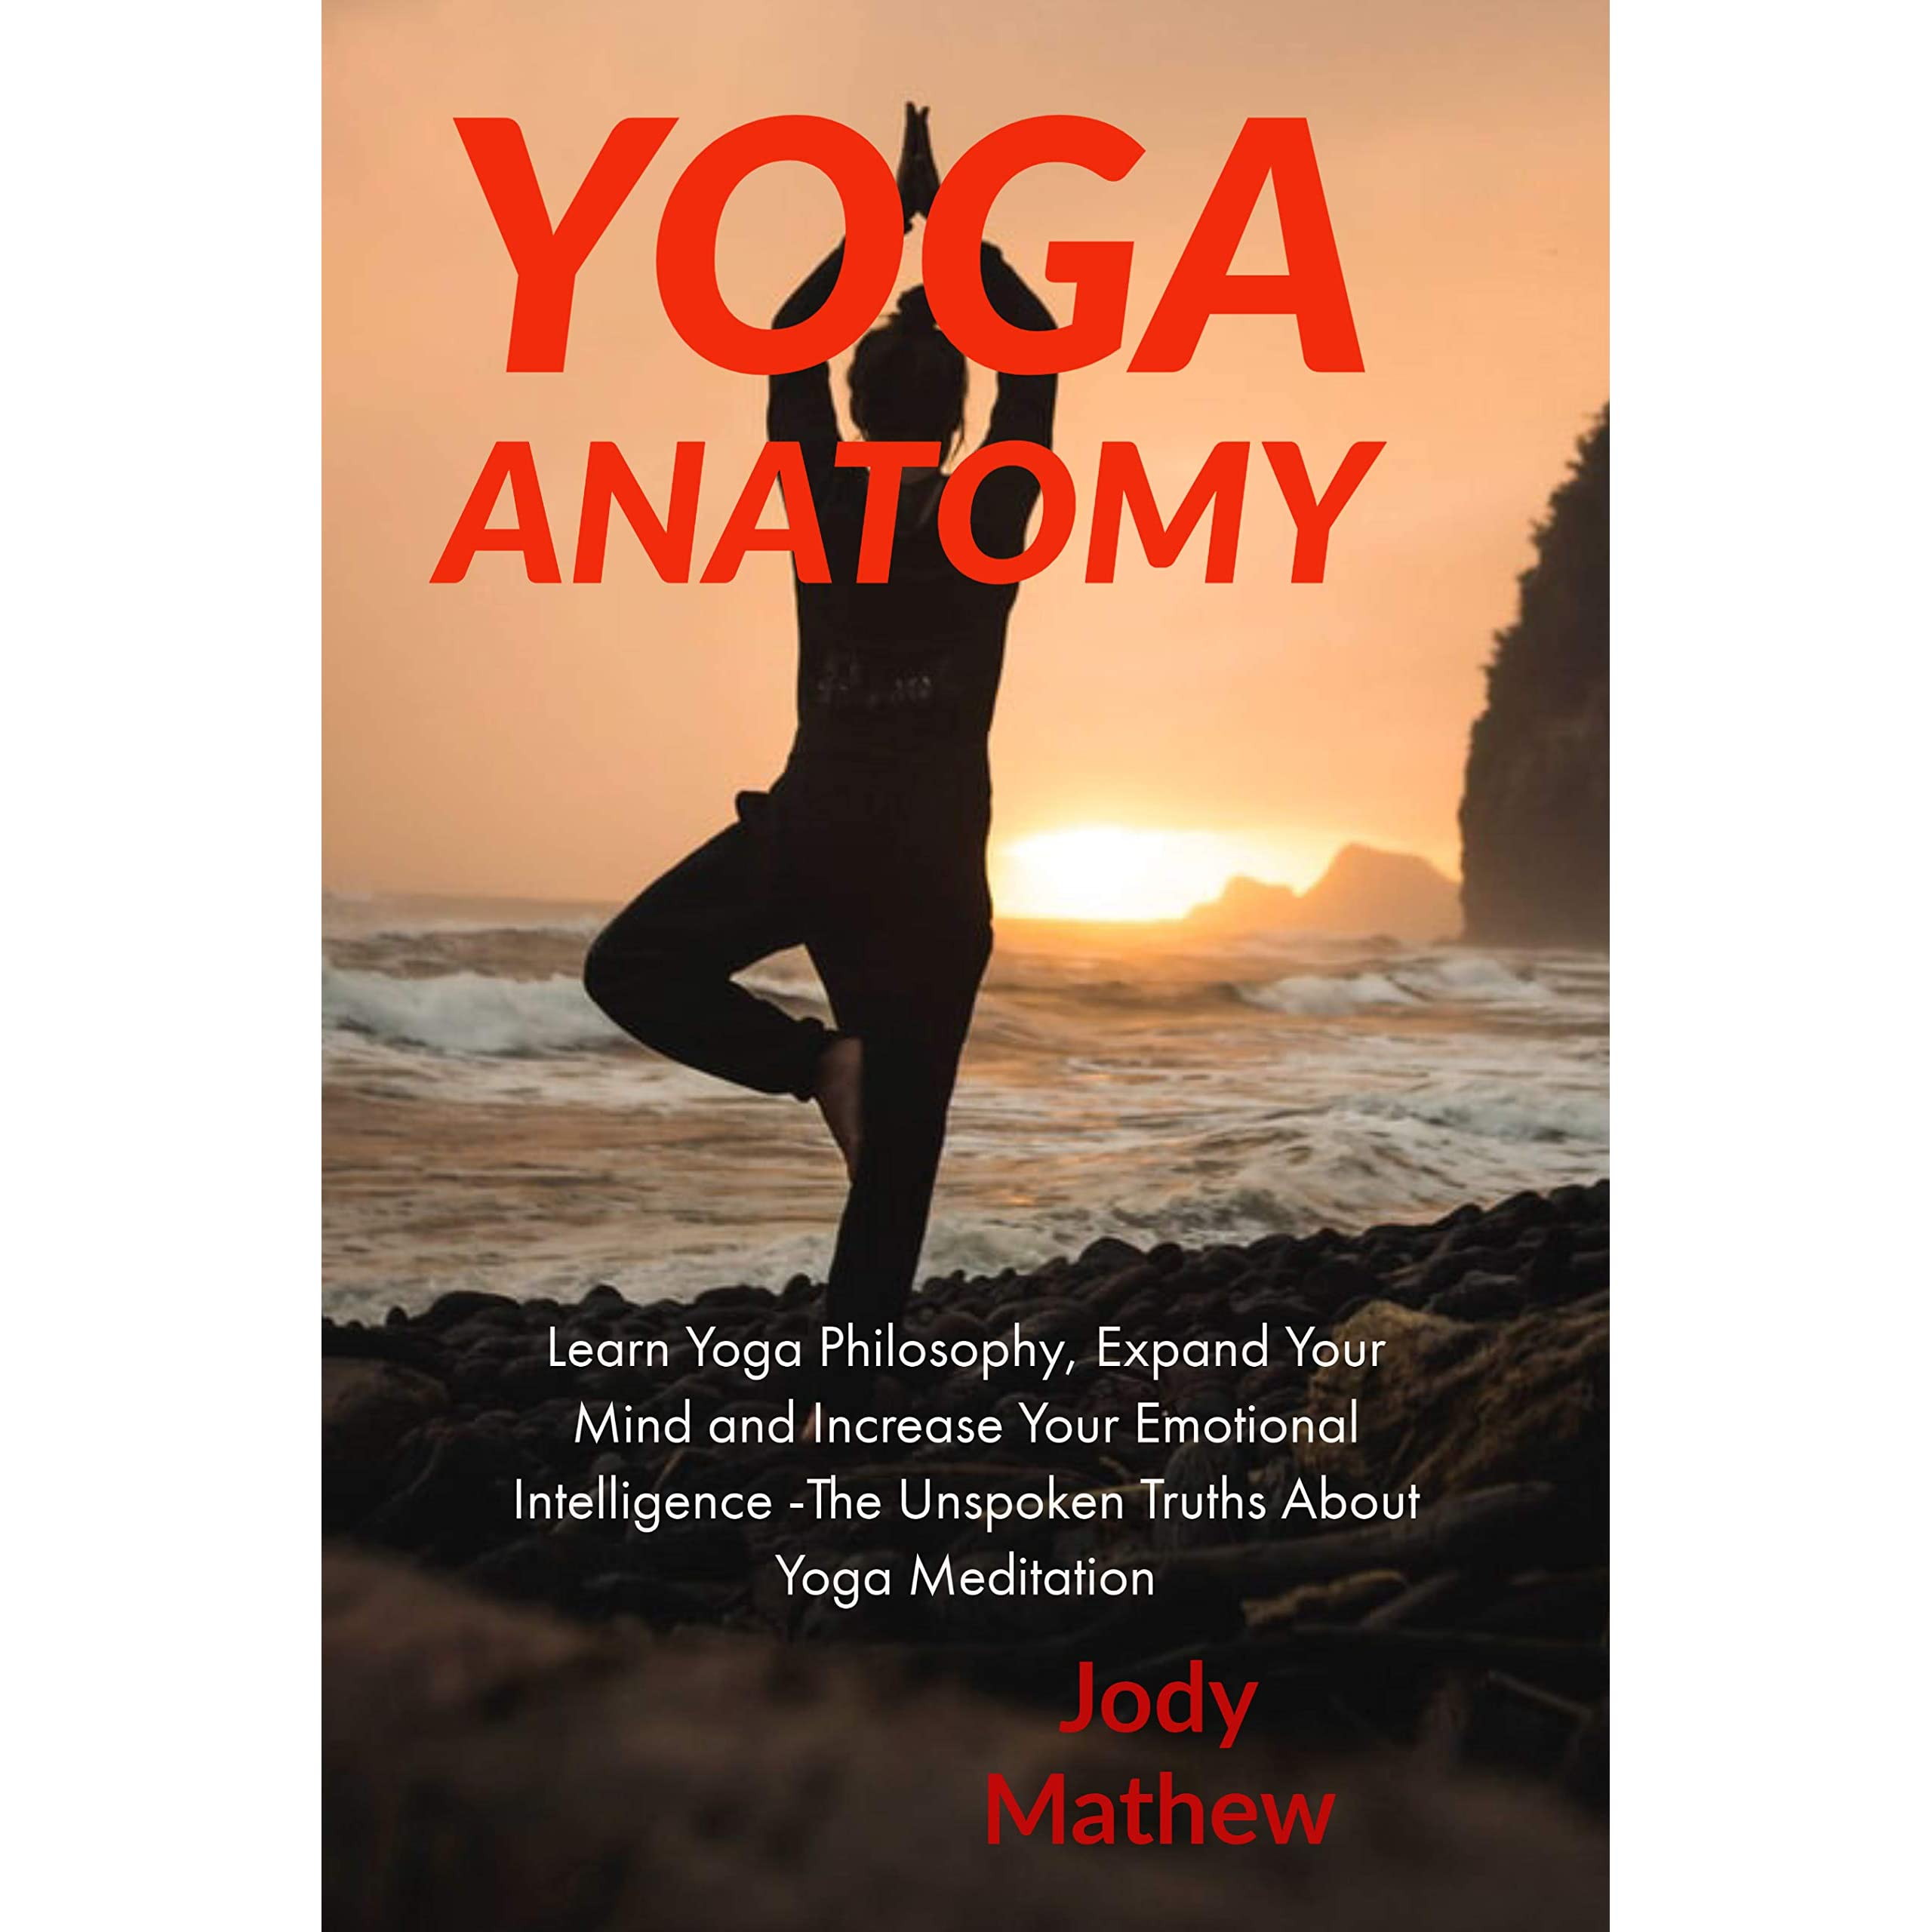 Yoga Anatomy Learn Yoga Philosophy Expand Your Mind And Increase Your Emotional Intelligence The Unspoken Truths About Yoga Meditation By Jody Matthew